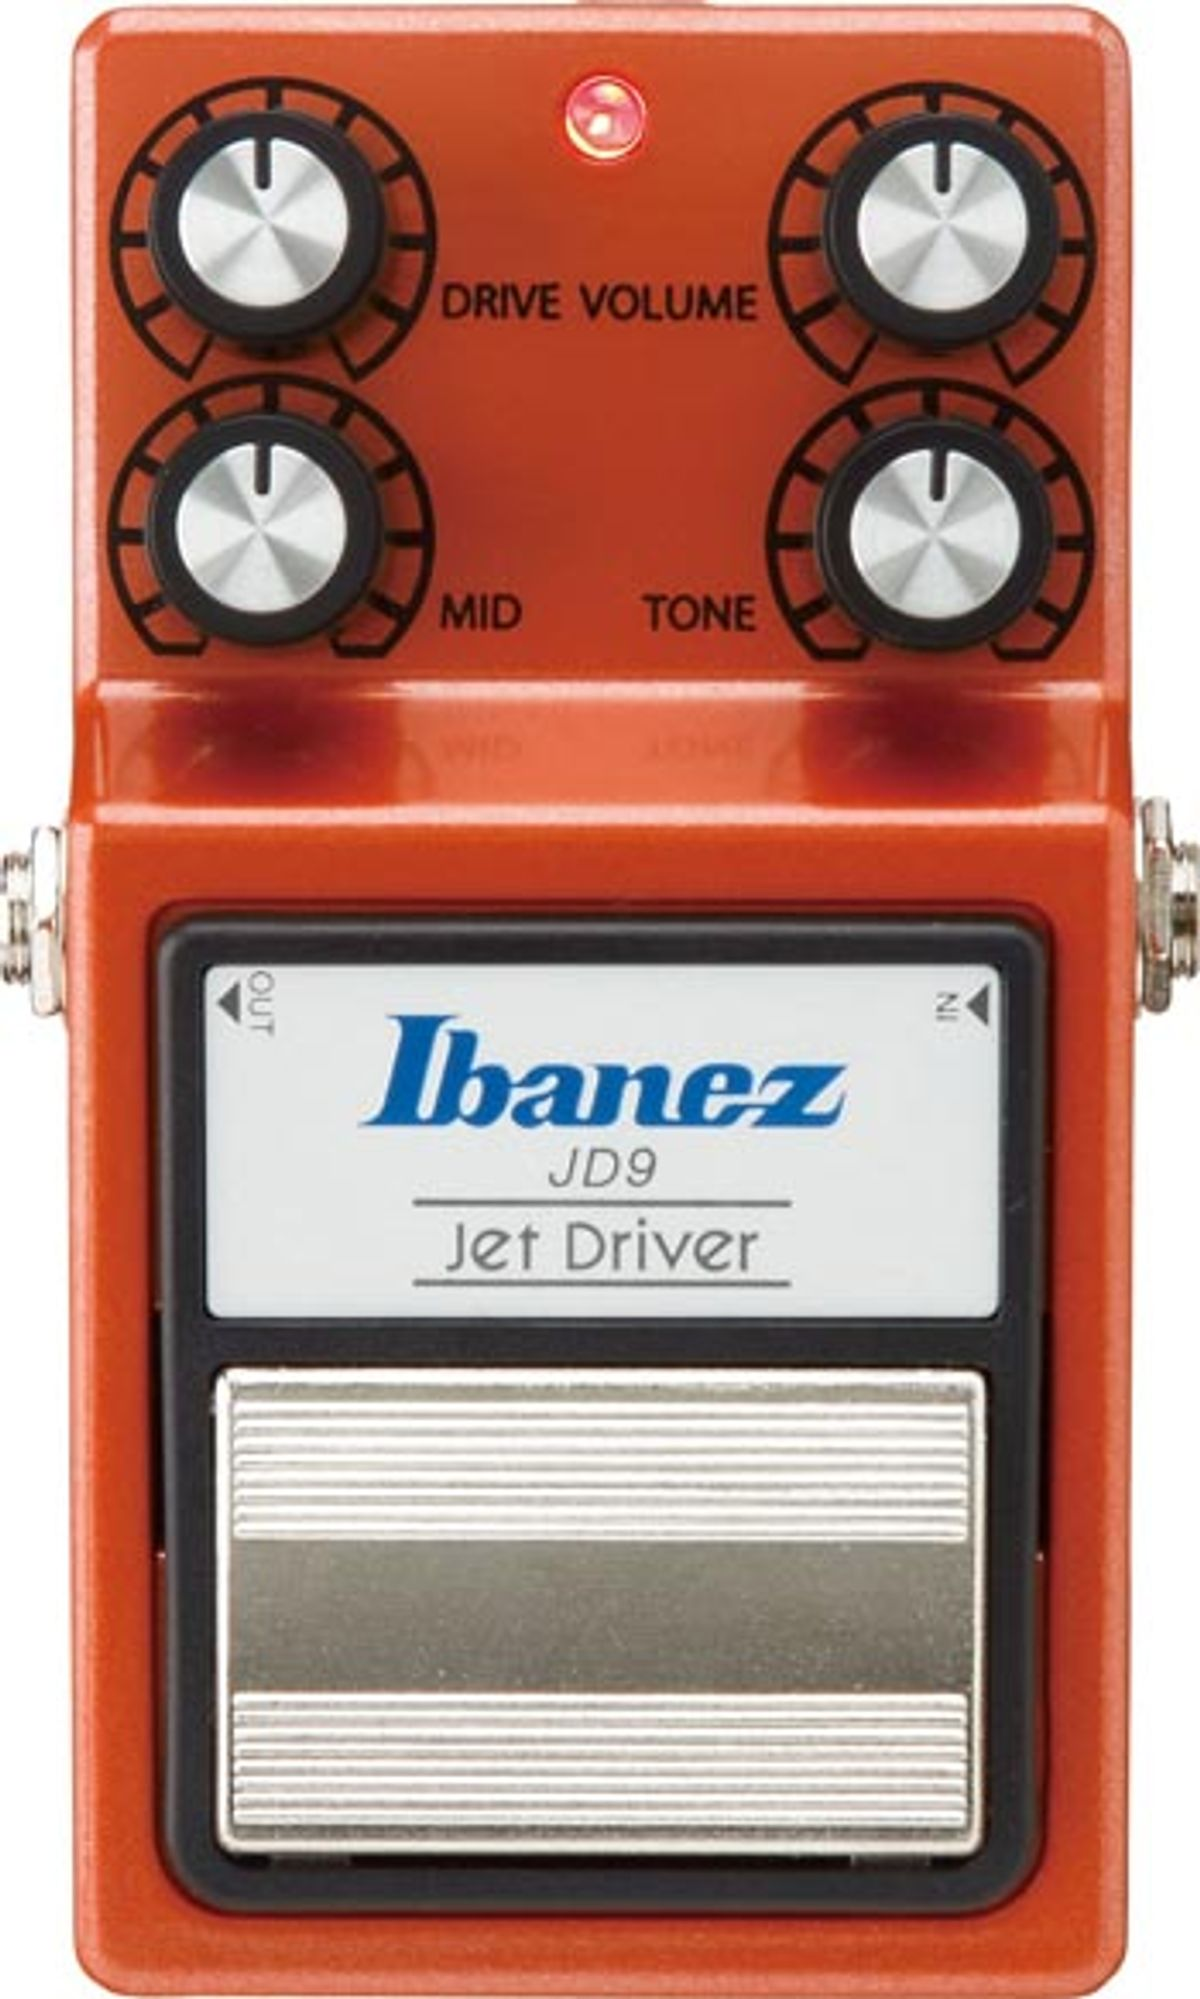 Ibanez JD9 Jet Driver Pedal Review